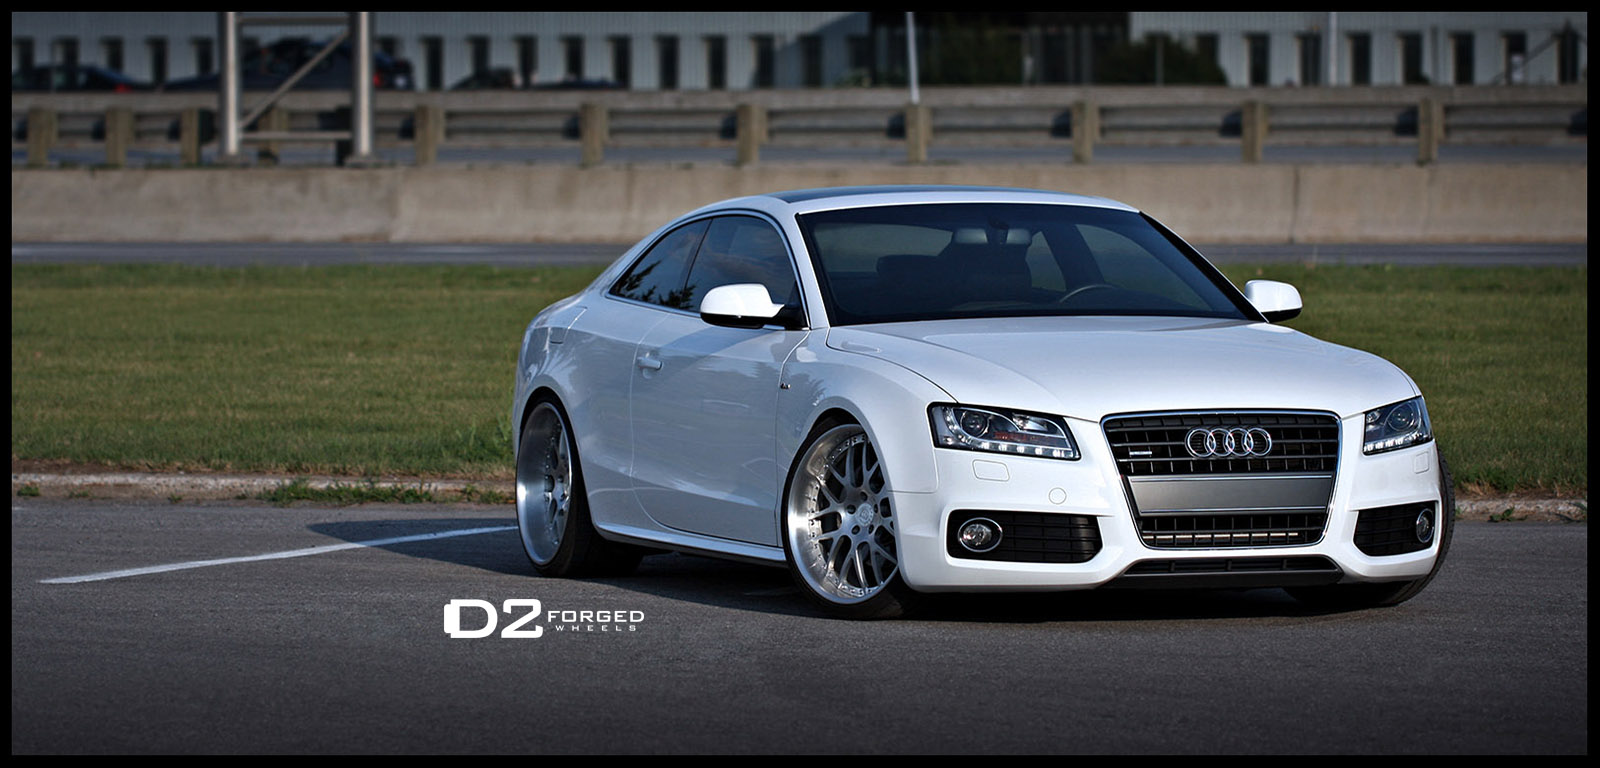 2012 audi a5 s line d2forged vs1 wheels 08 audi tuning mag. Black Bedroom Furniture Sets. Home Design Ideas